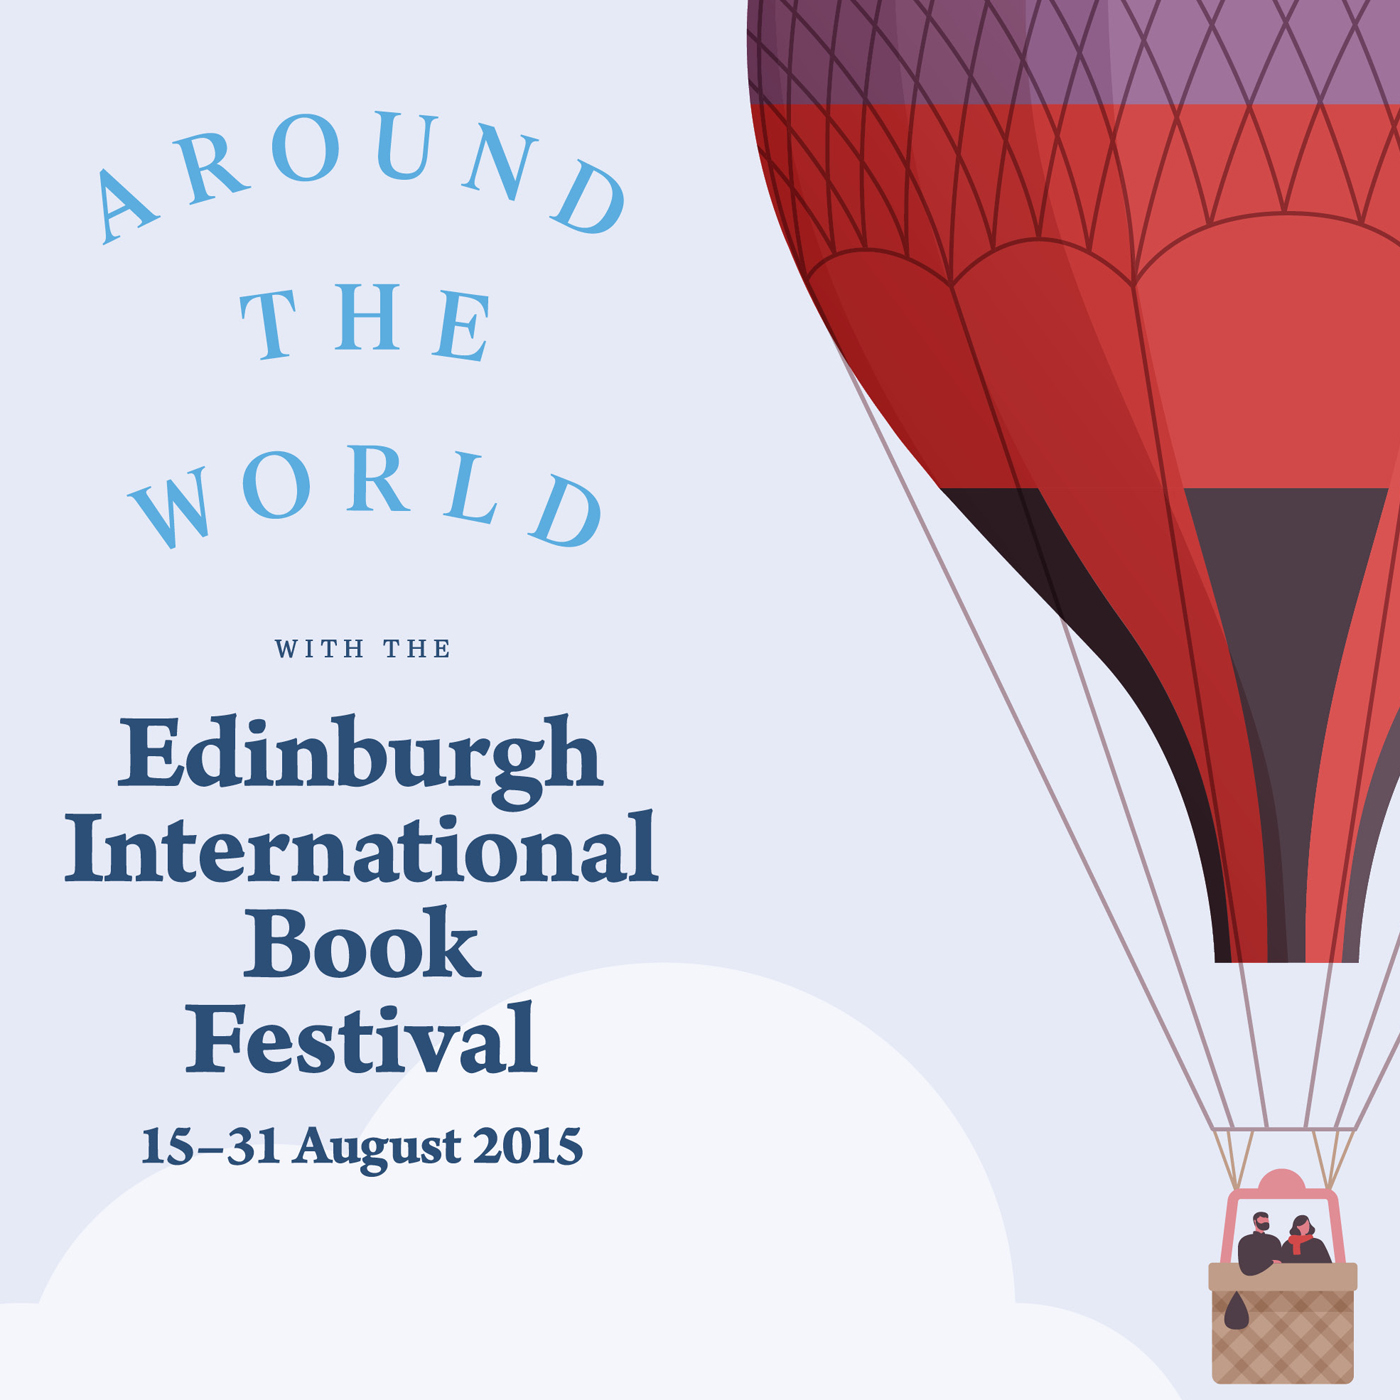 2015 Edinburgh International Book Festival